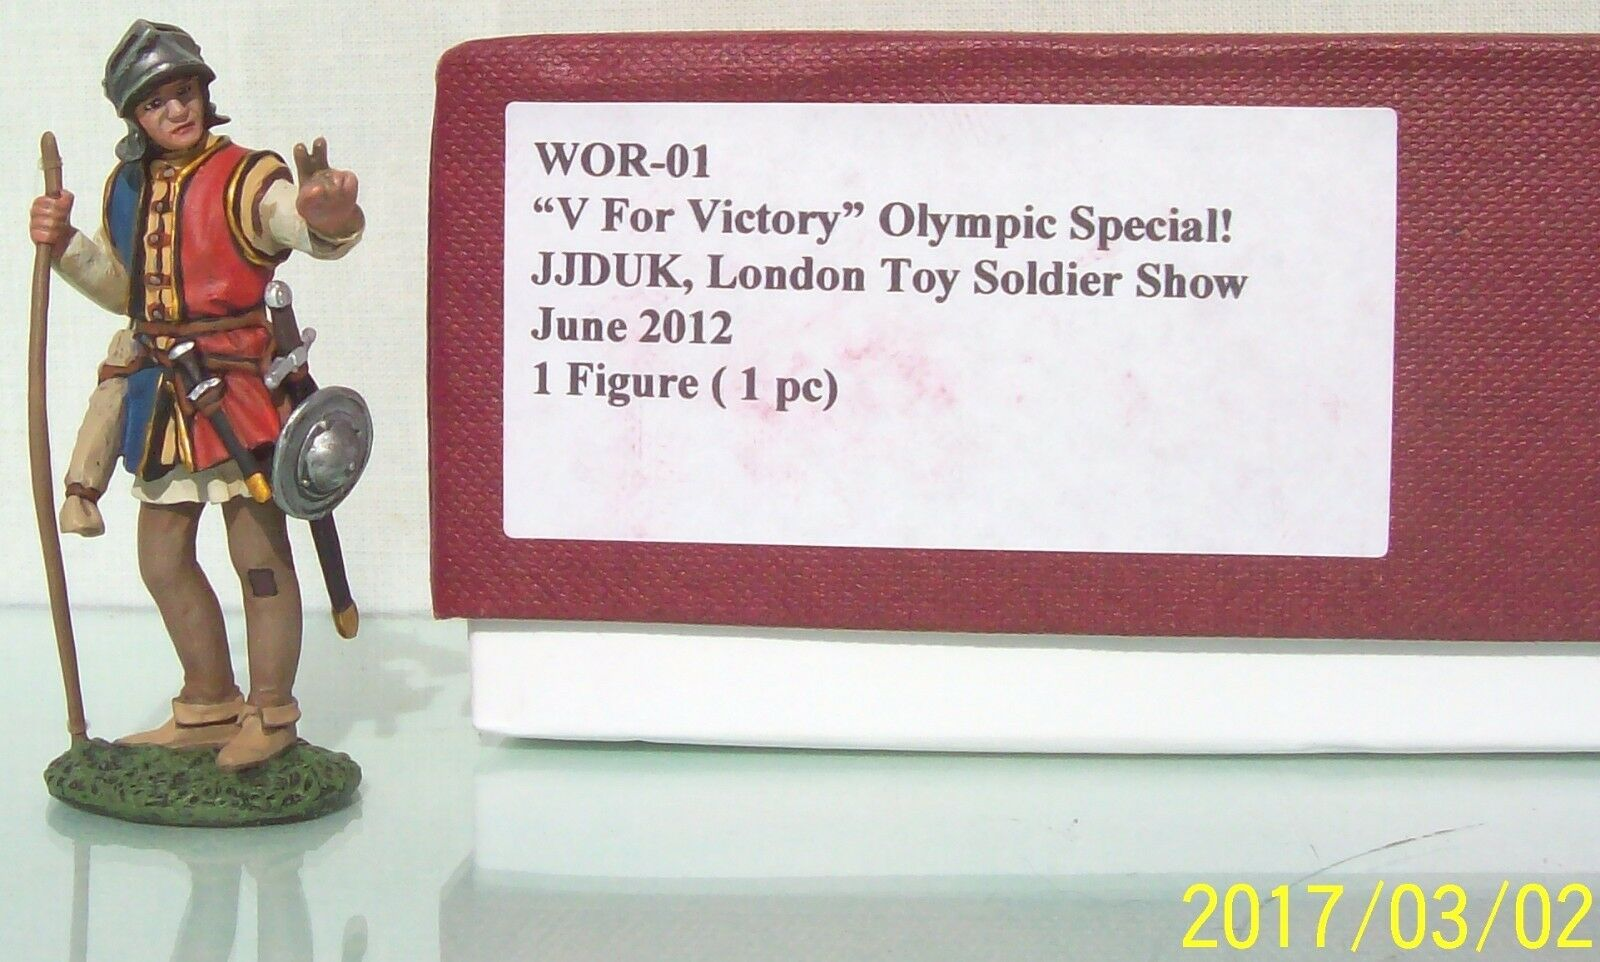 JOHN JENKINS 2012 LONDON TOY SOLDIER SHOW WOR-01 MEDIEVAL OLYMPIC SPECIAL MIB